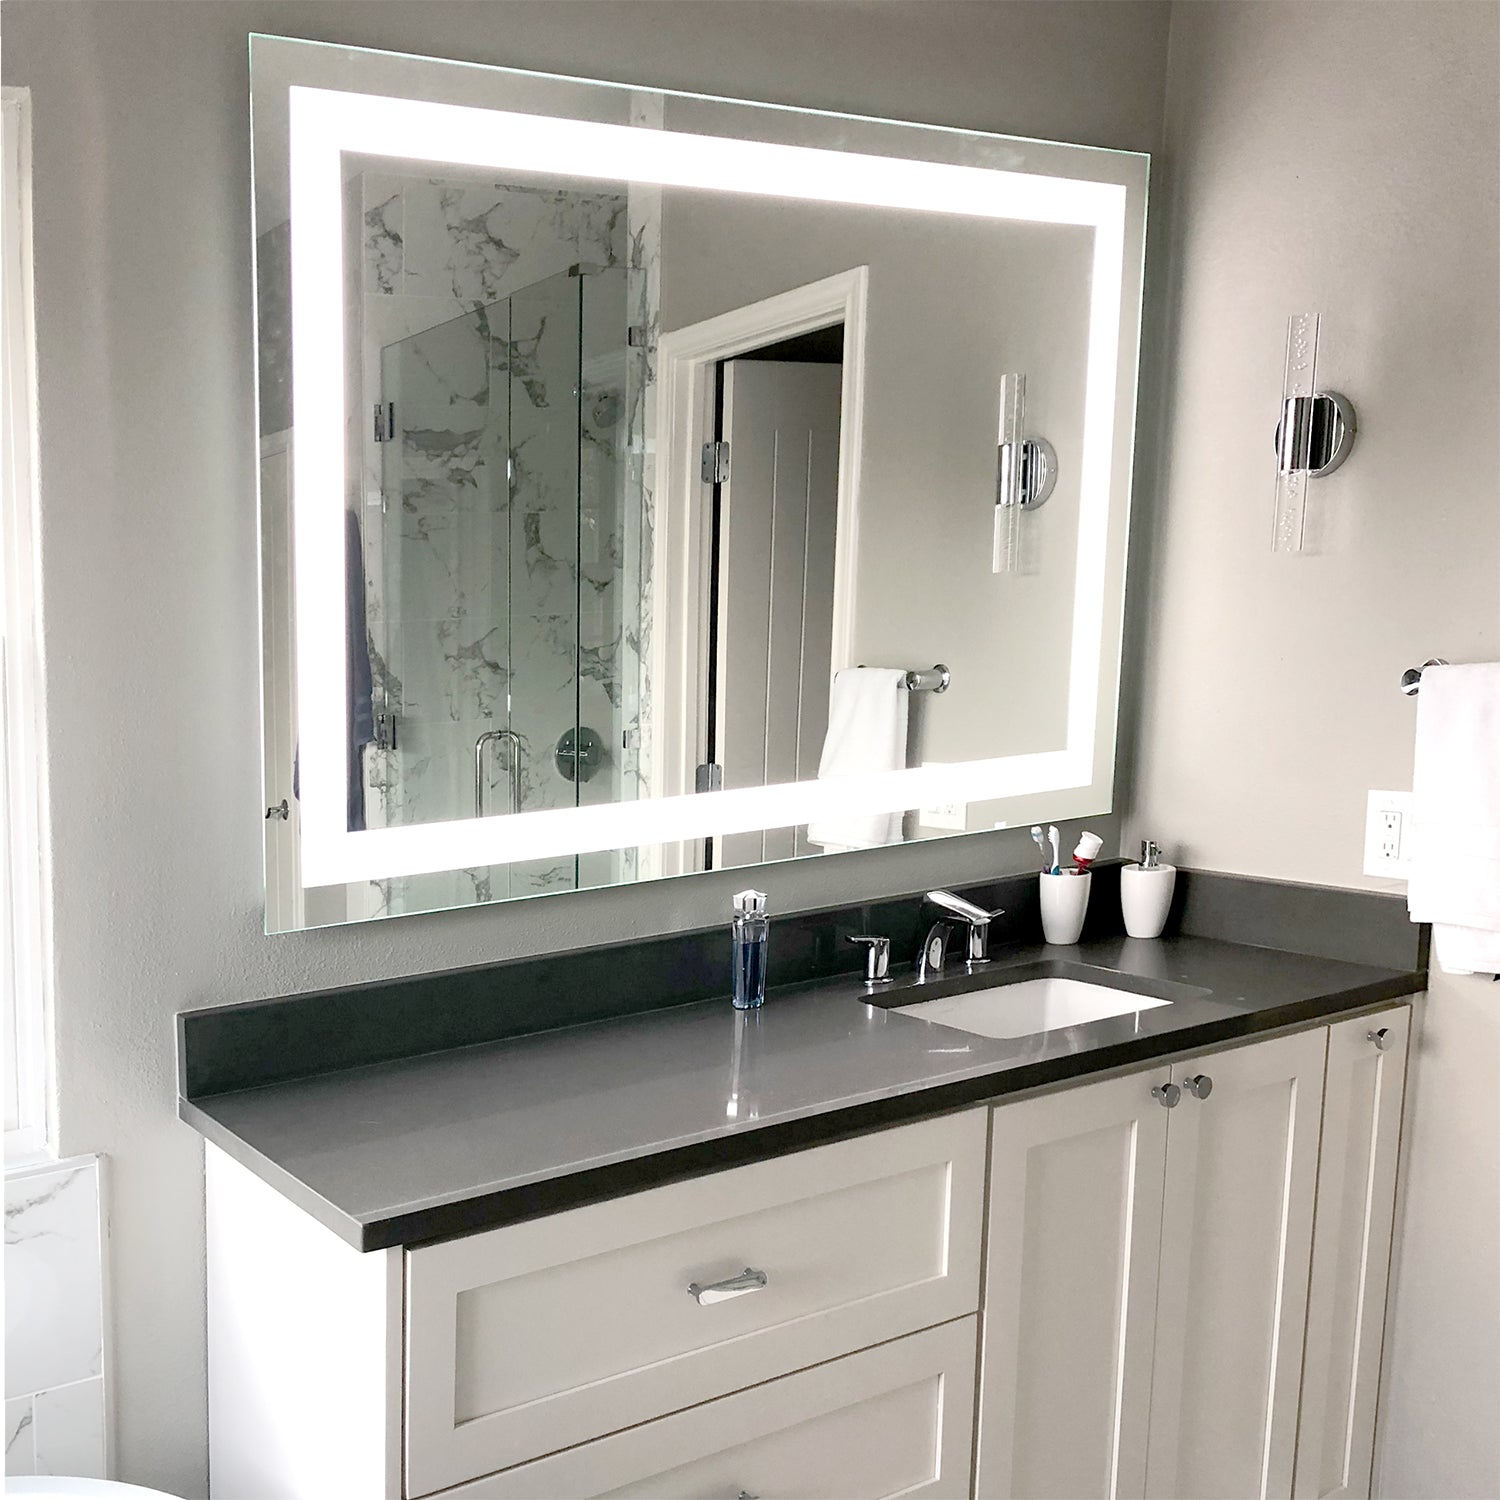 Front Lighted Led Bathroom Vanity Mirror 40 X 32 Rectangular Mirrors Marble